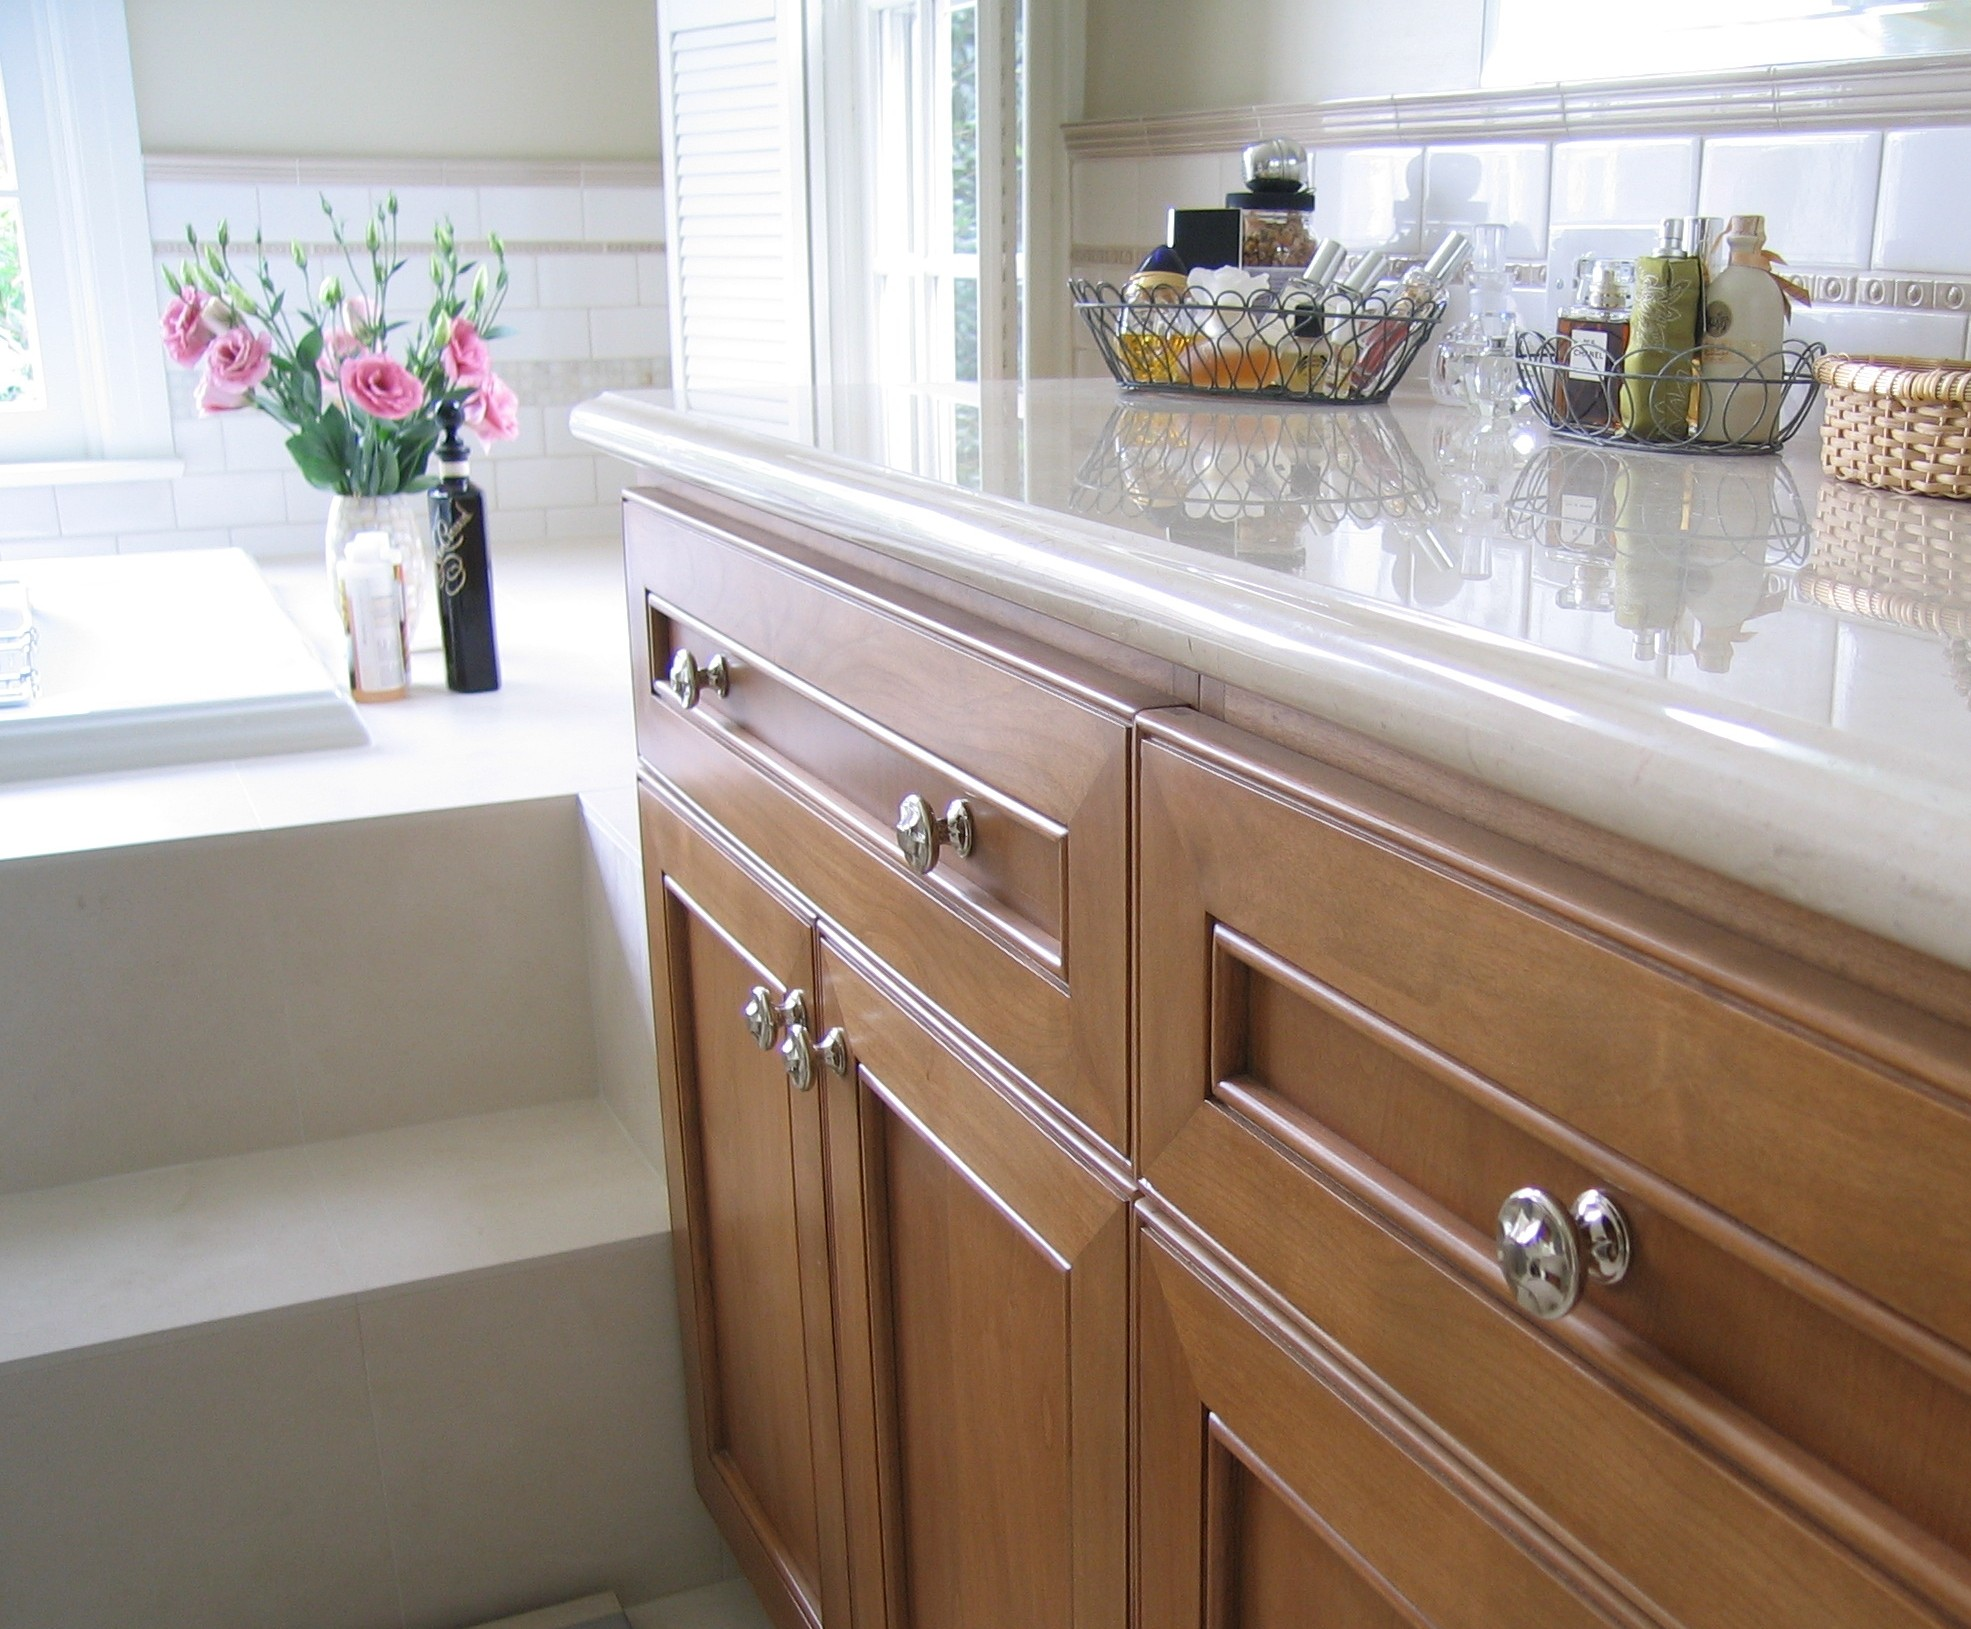 Resplendent Kitchen Cabinet Handles Uk